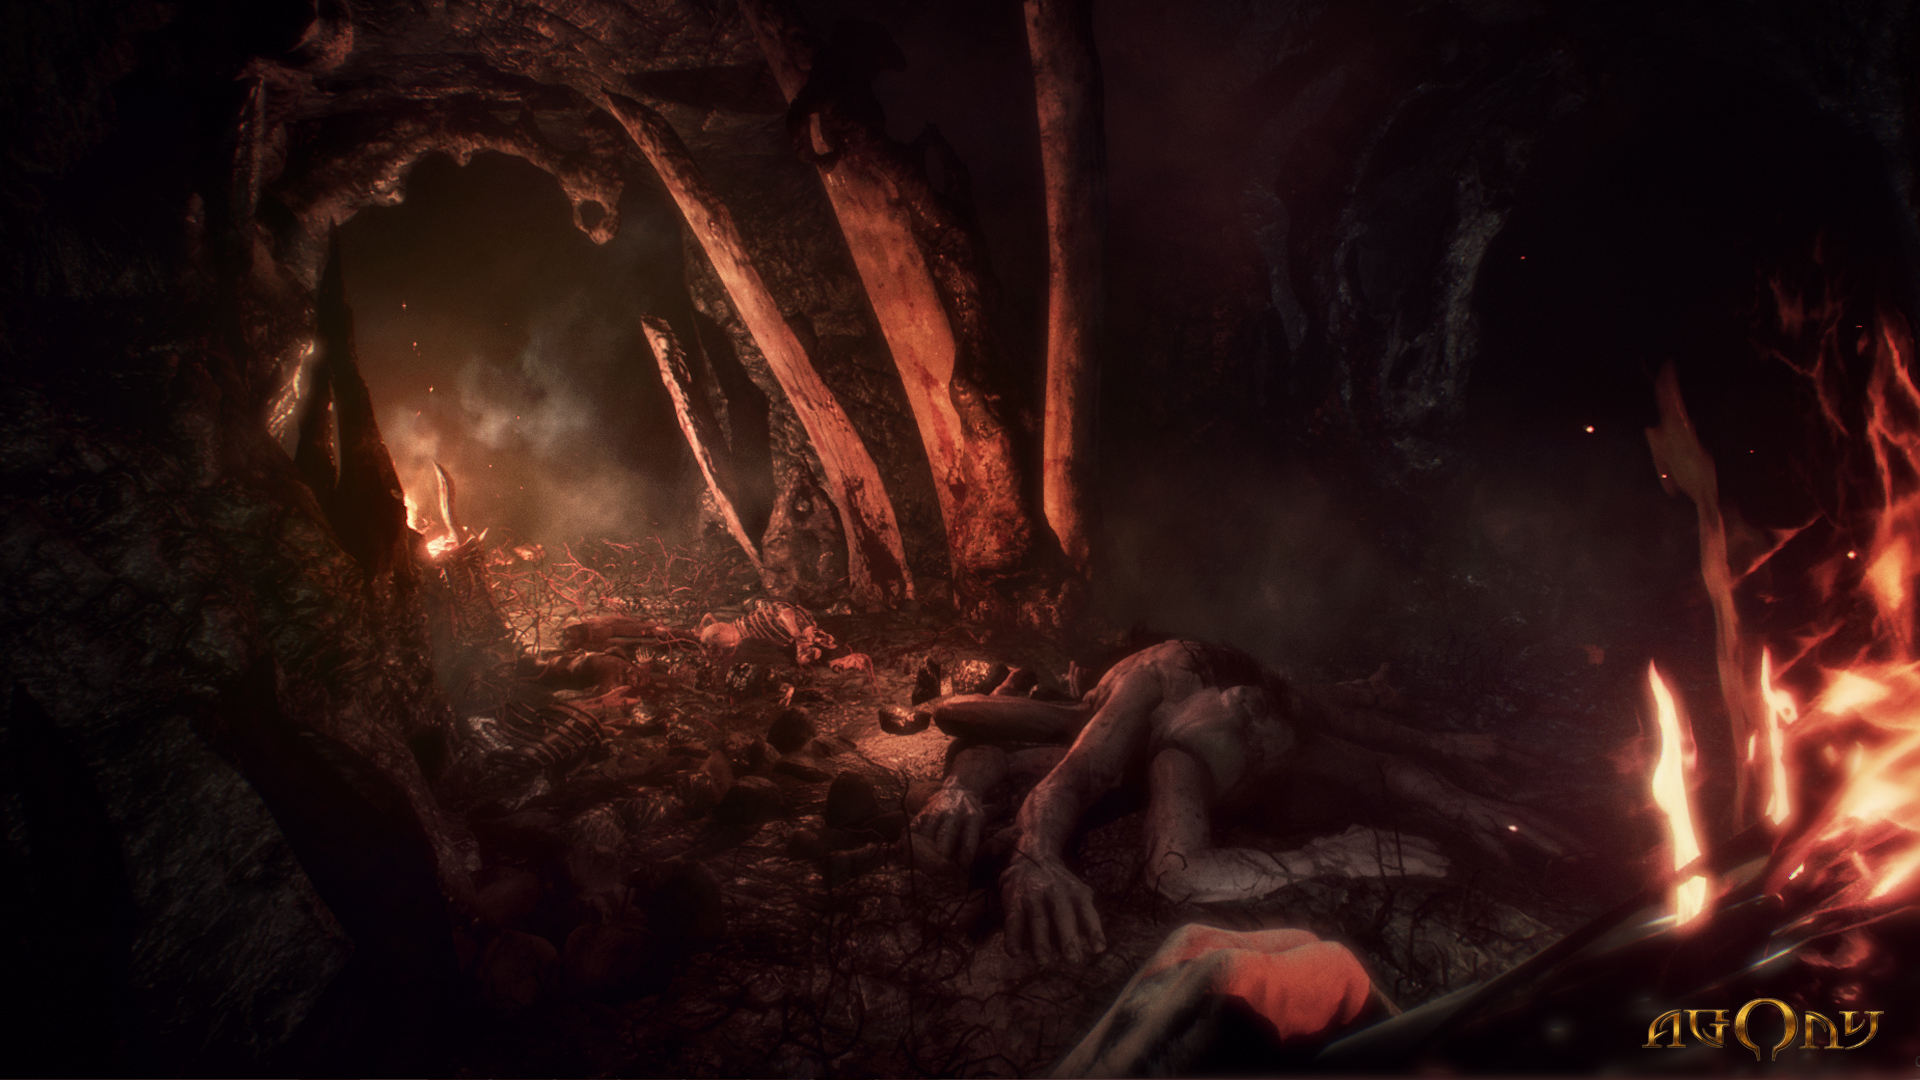 Horror Games For Xbox 1 : New first person survival horror game coming to ps xbox